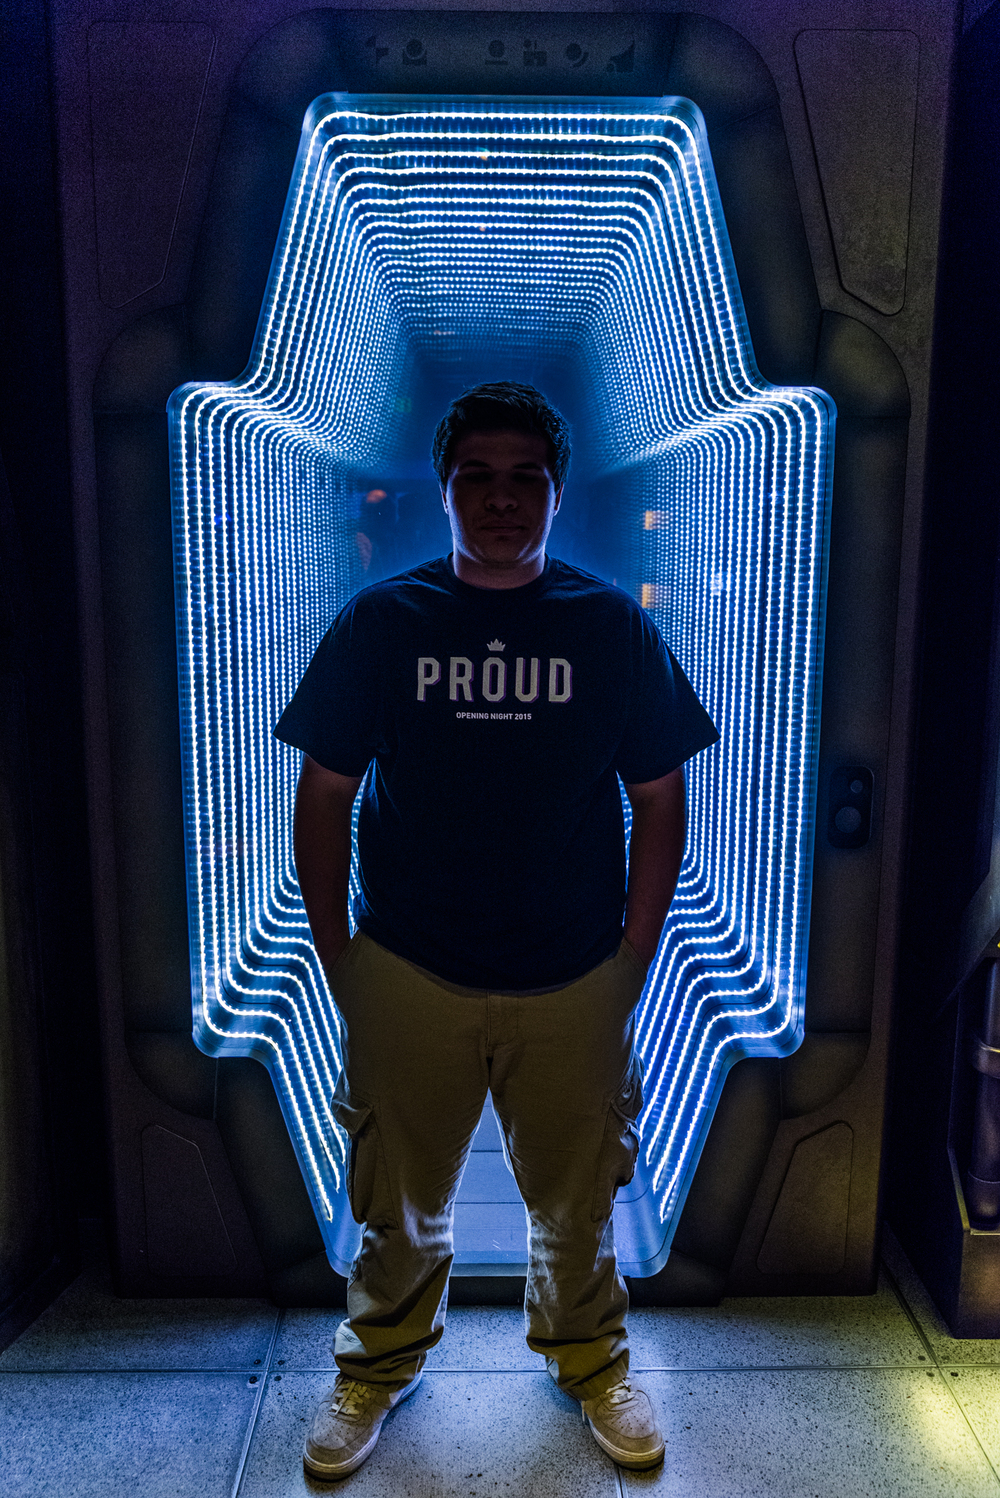 My son in front of an infinity window at the EMP museum in Seattle, Washington #sacramentoproud.